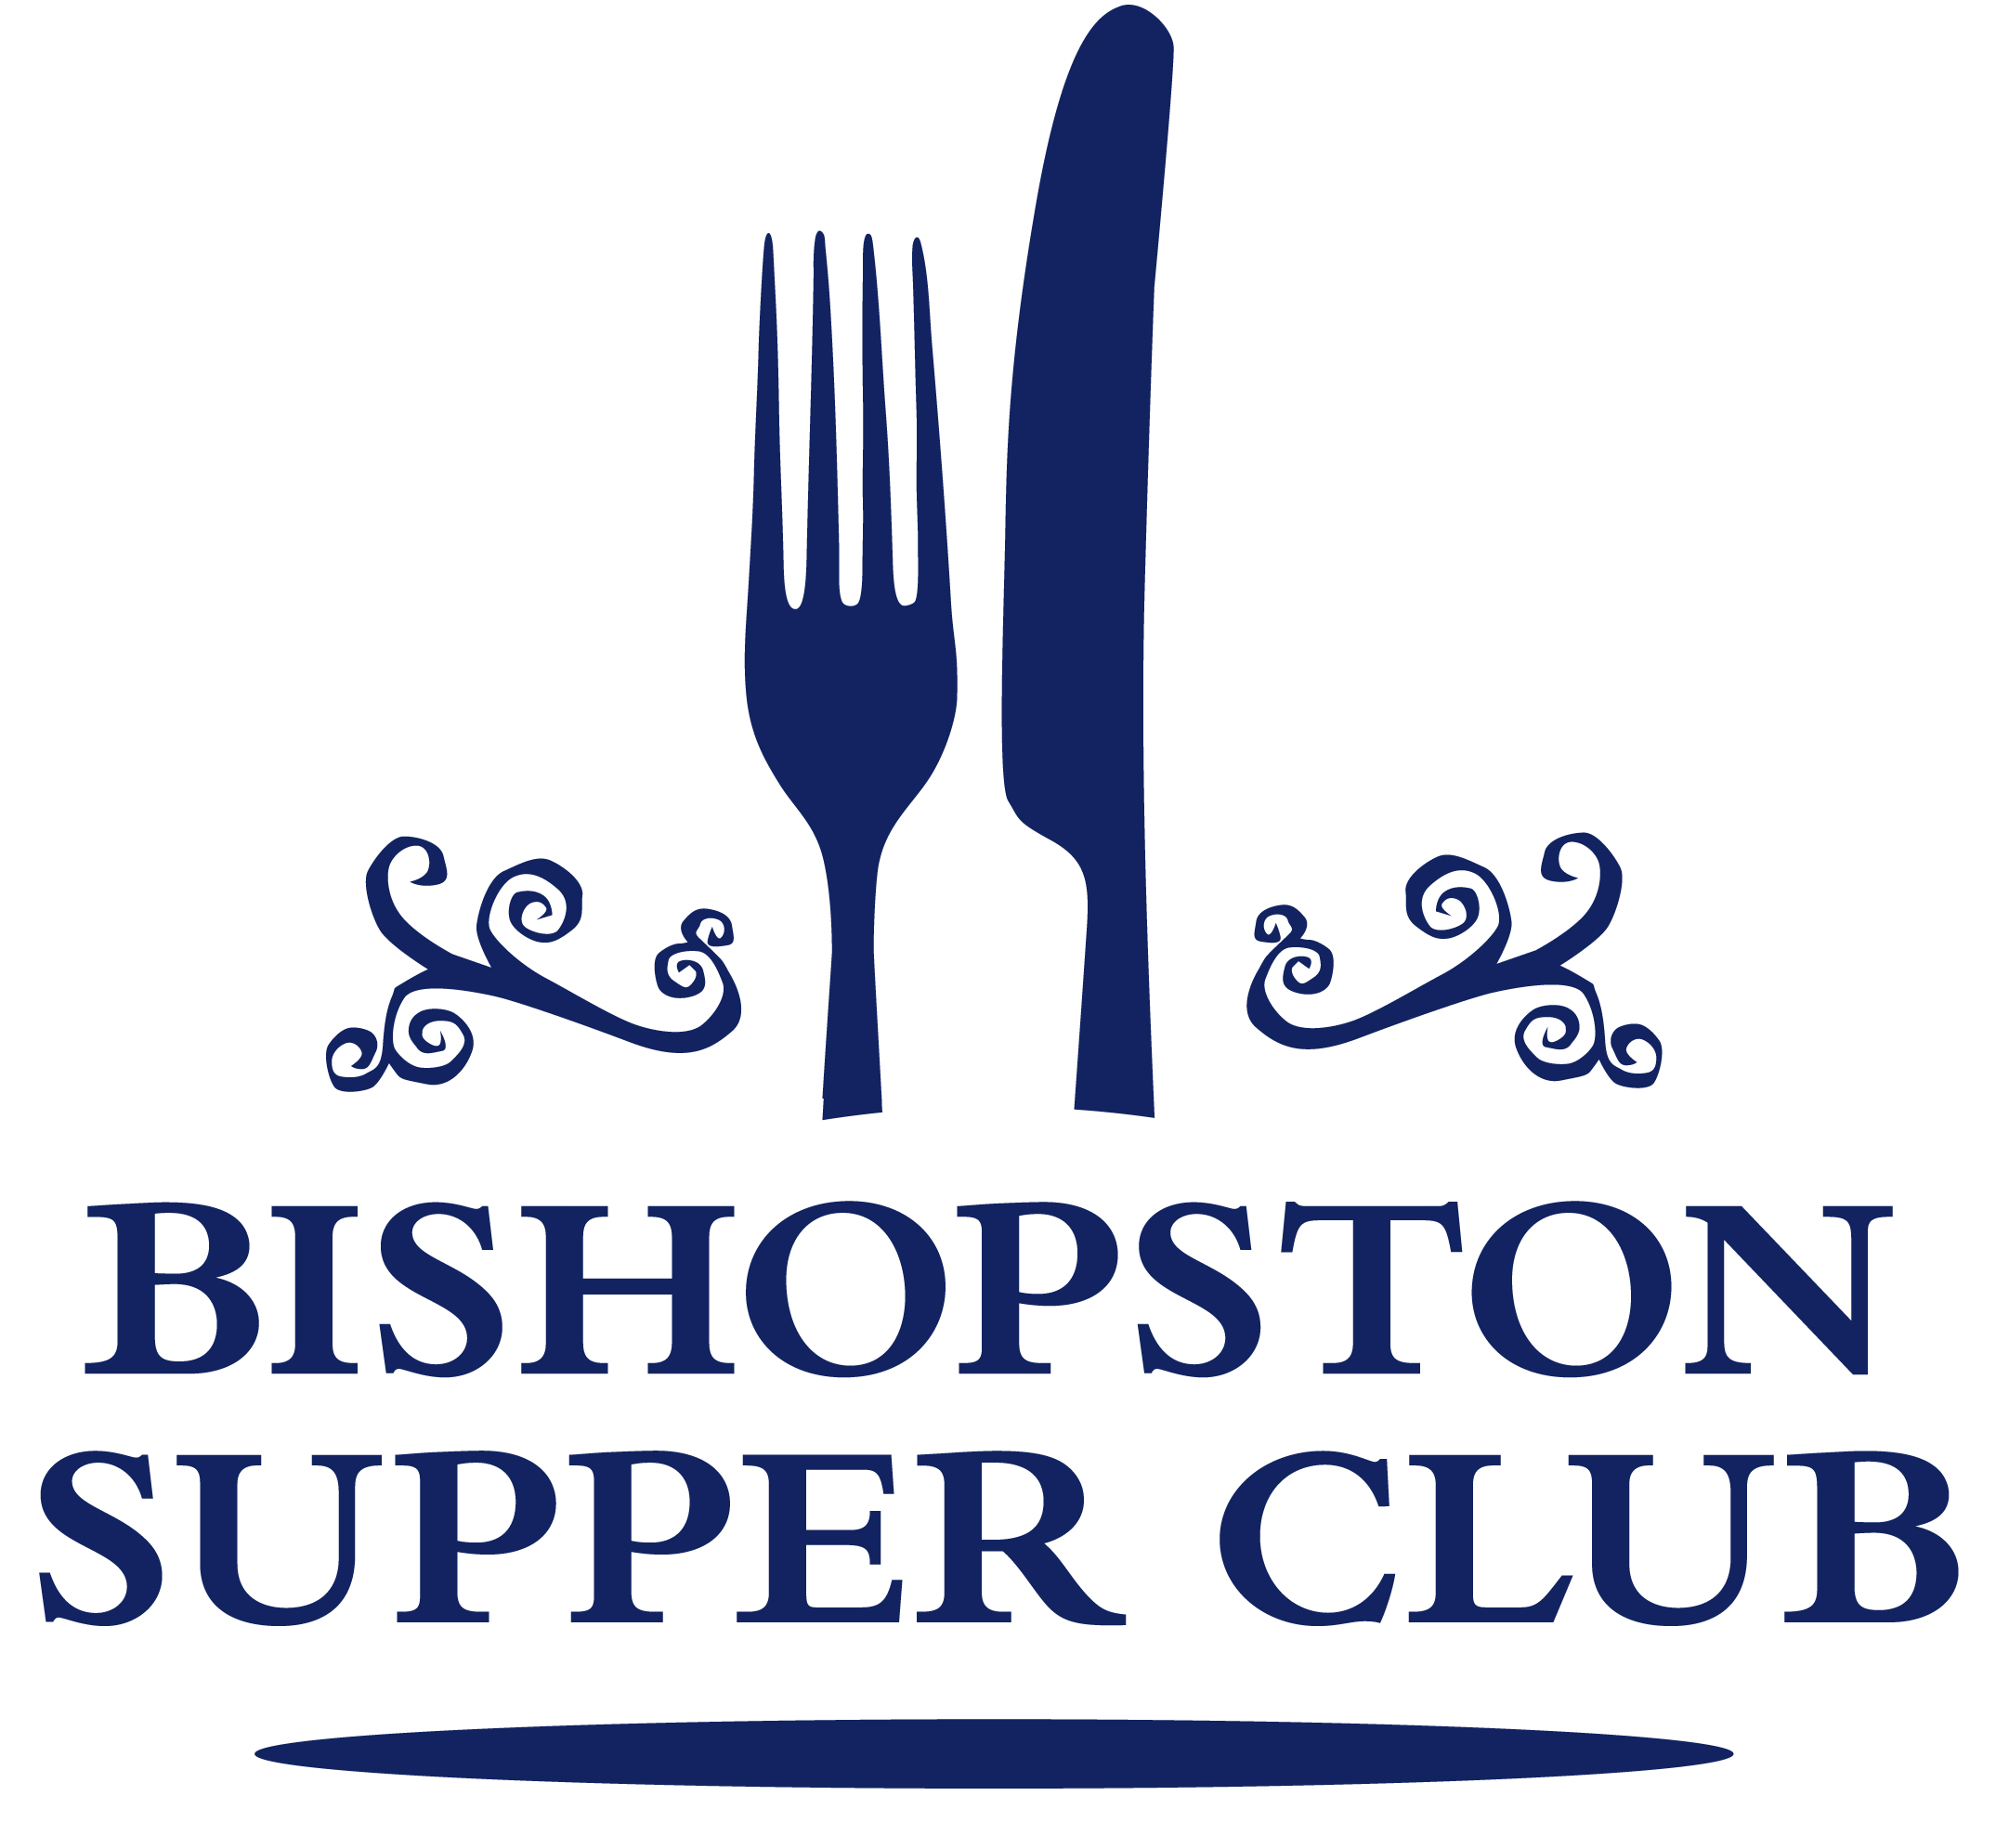 Bishopston supper club logo high res.jpg